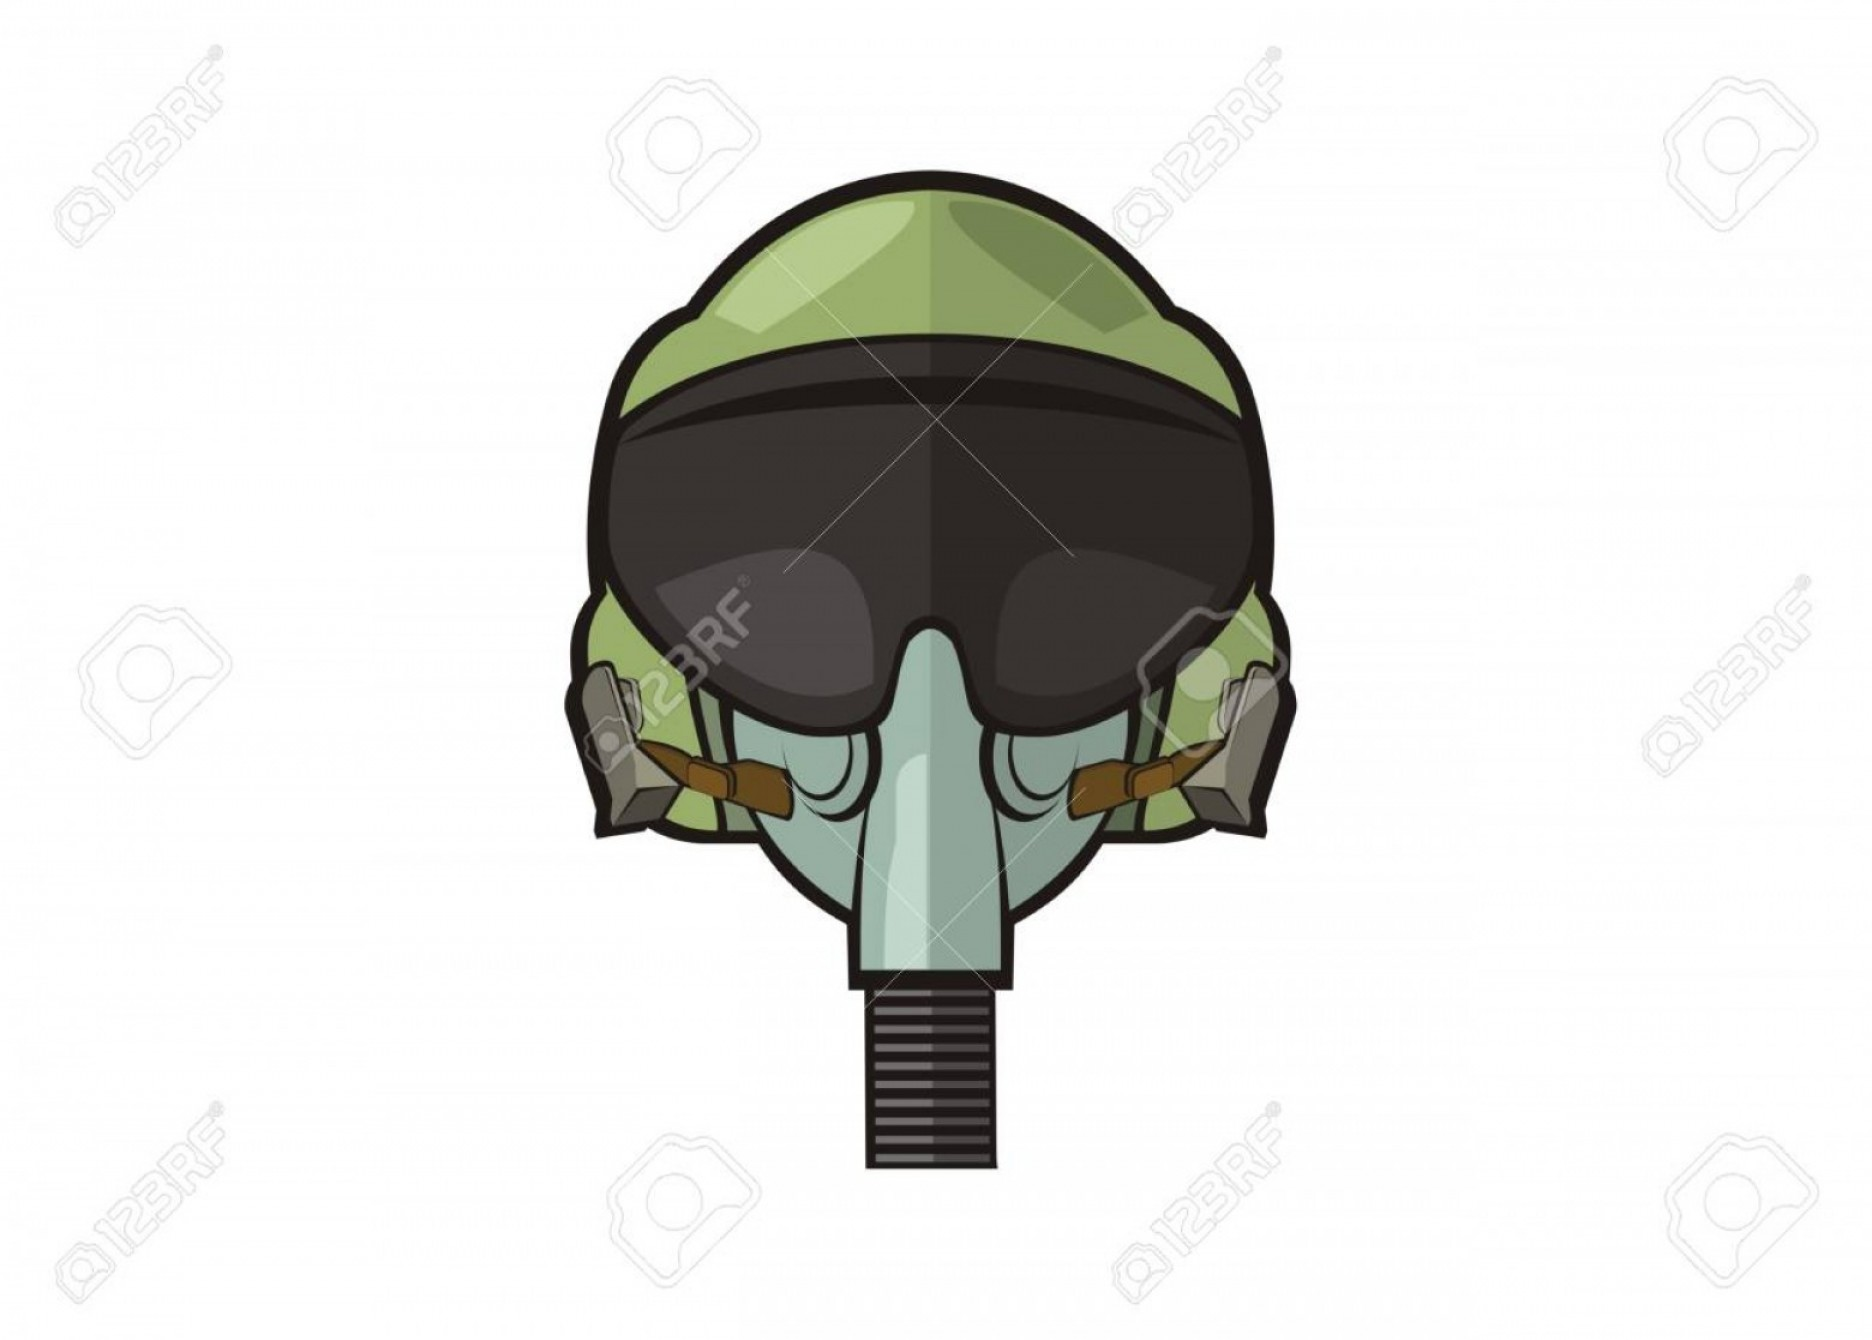 Fighter Helmet Vectors: Photostock Vector Jet Fighter Pilot Helmet Simple Illustration